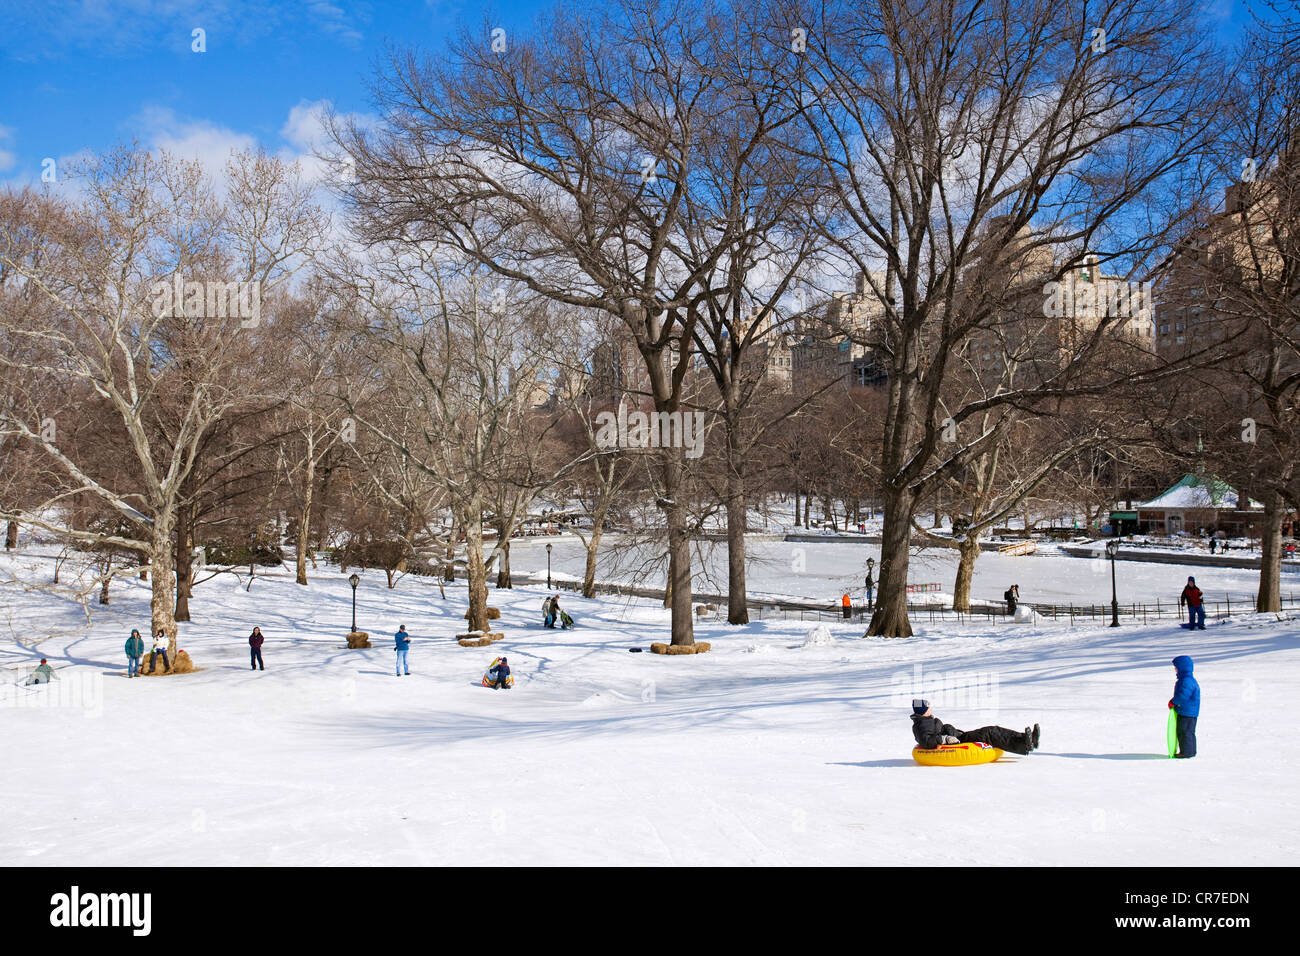 United States, New York City, Manhattan, Central Park in winter under the snow, families playing in the ice - Stock Image